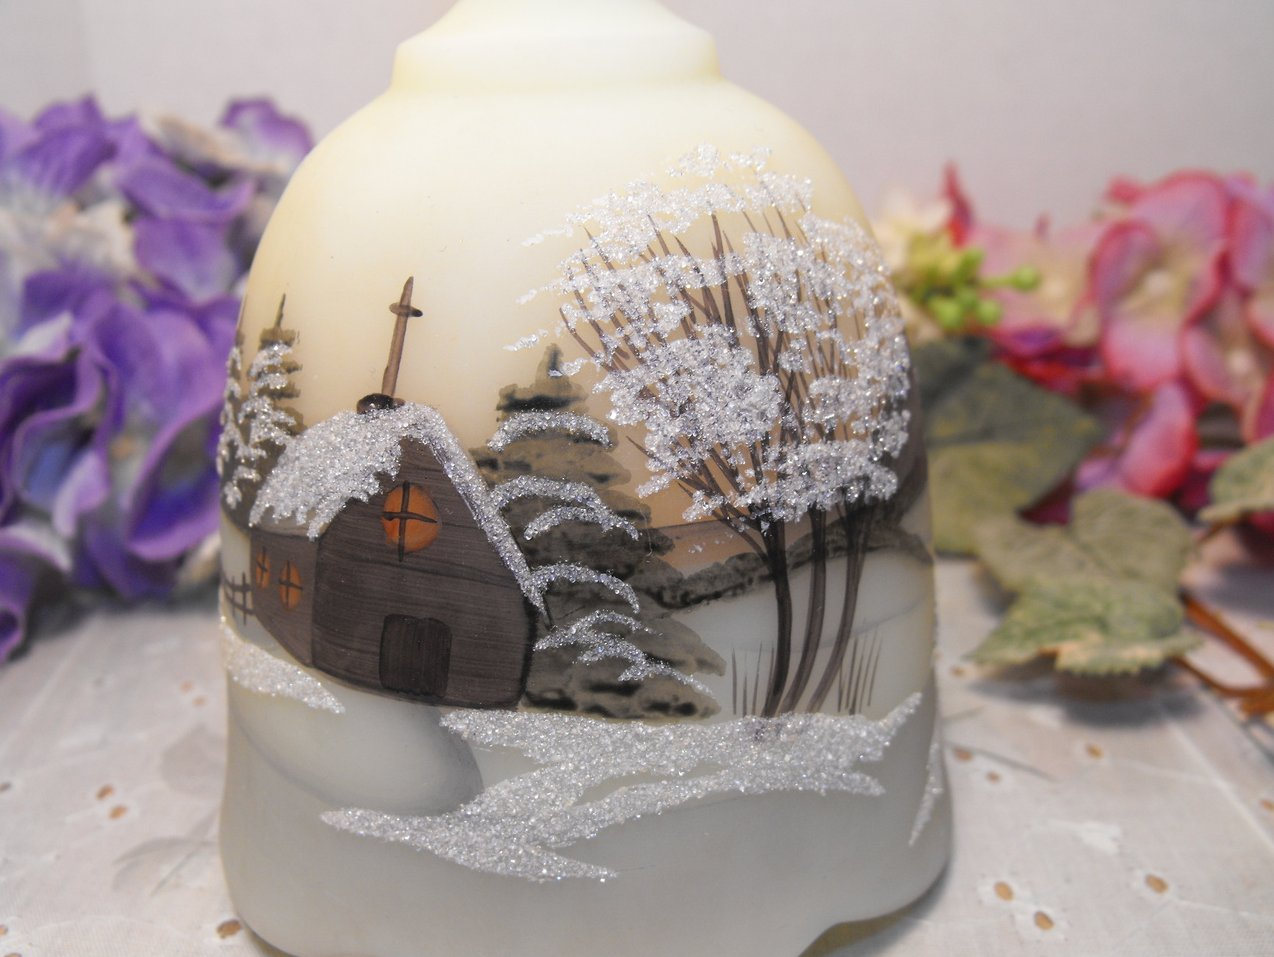 Vintage Bell Frosted Glass Hand Painted 1978 Signed by Artist